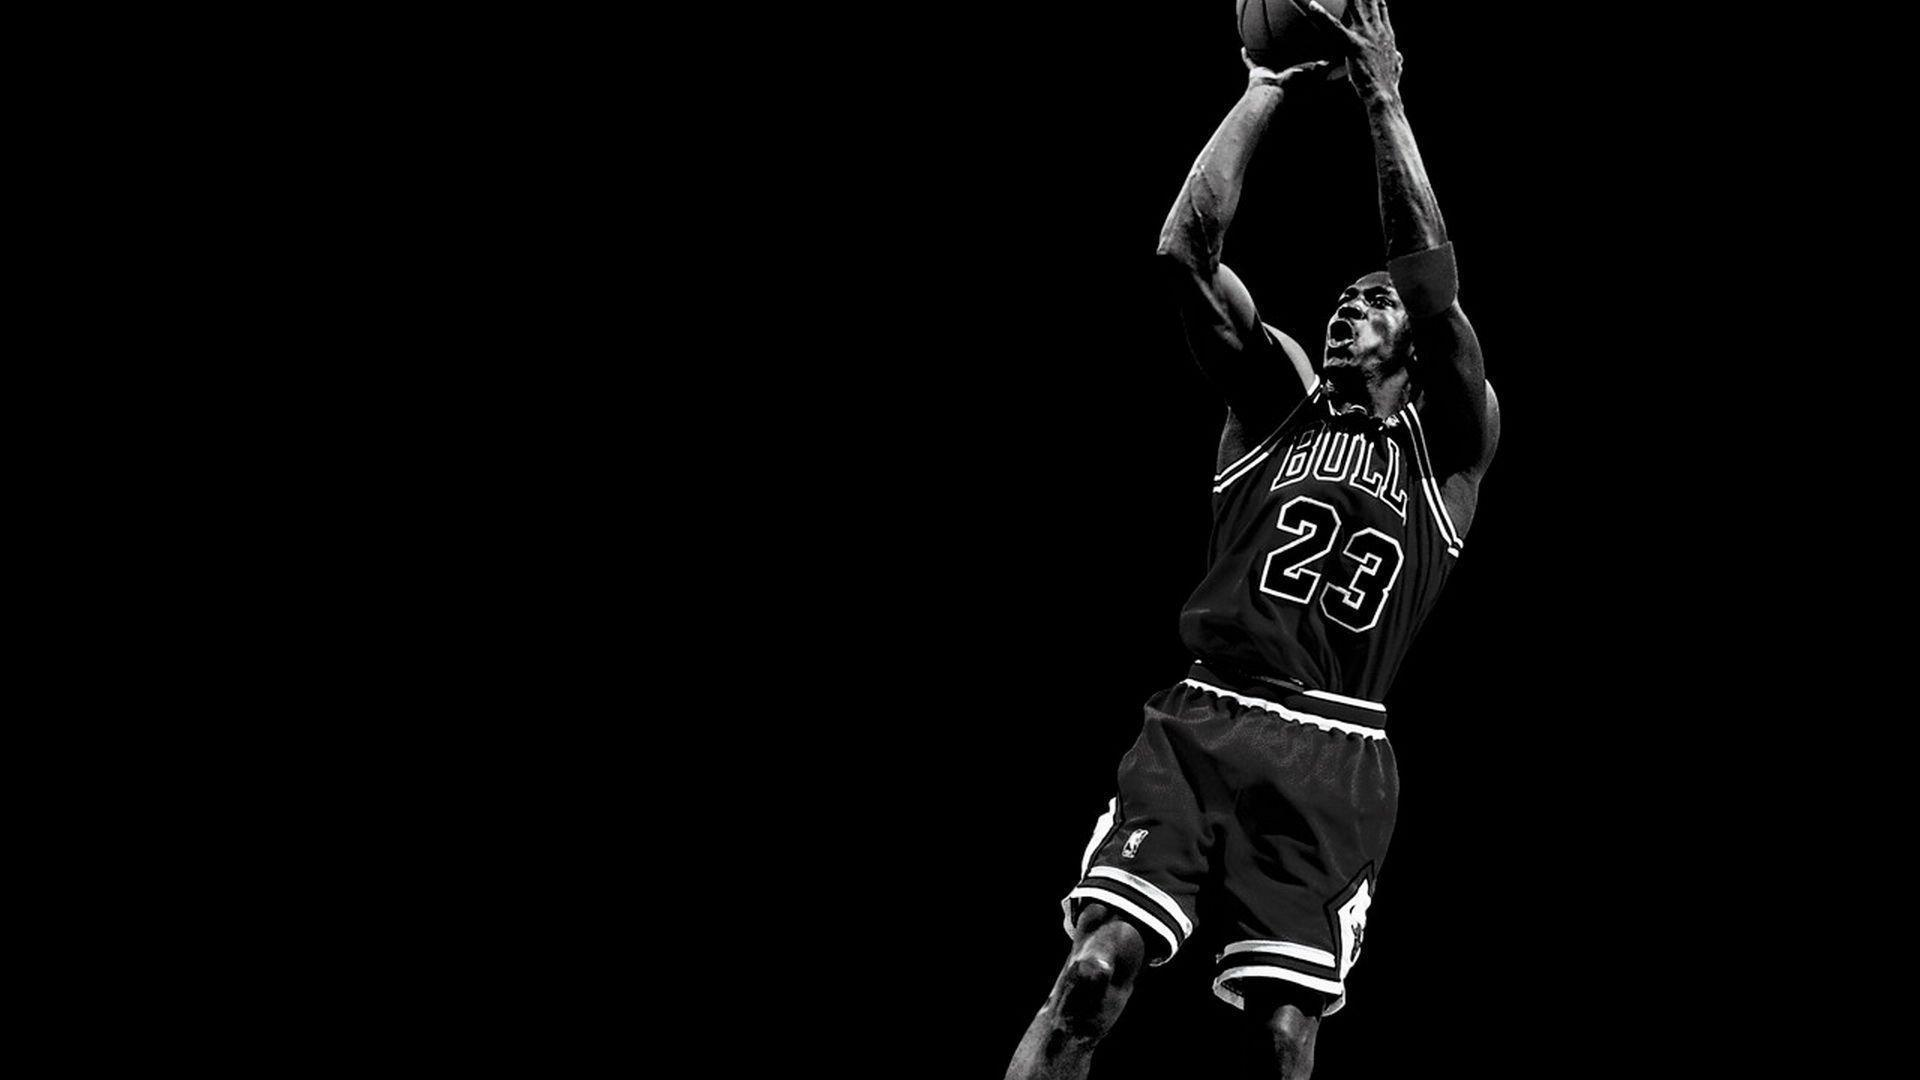 Fonds d'?cran Michael Jordan : tous les wallpapers Michael Jordan